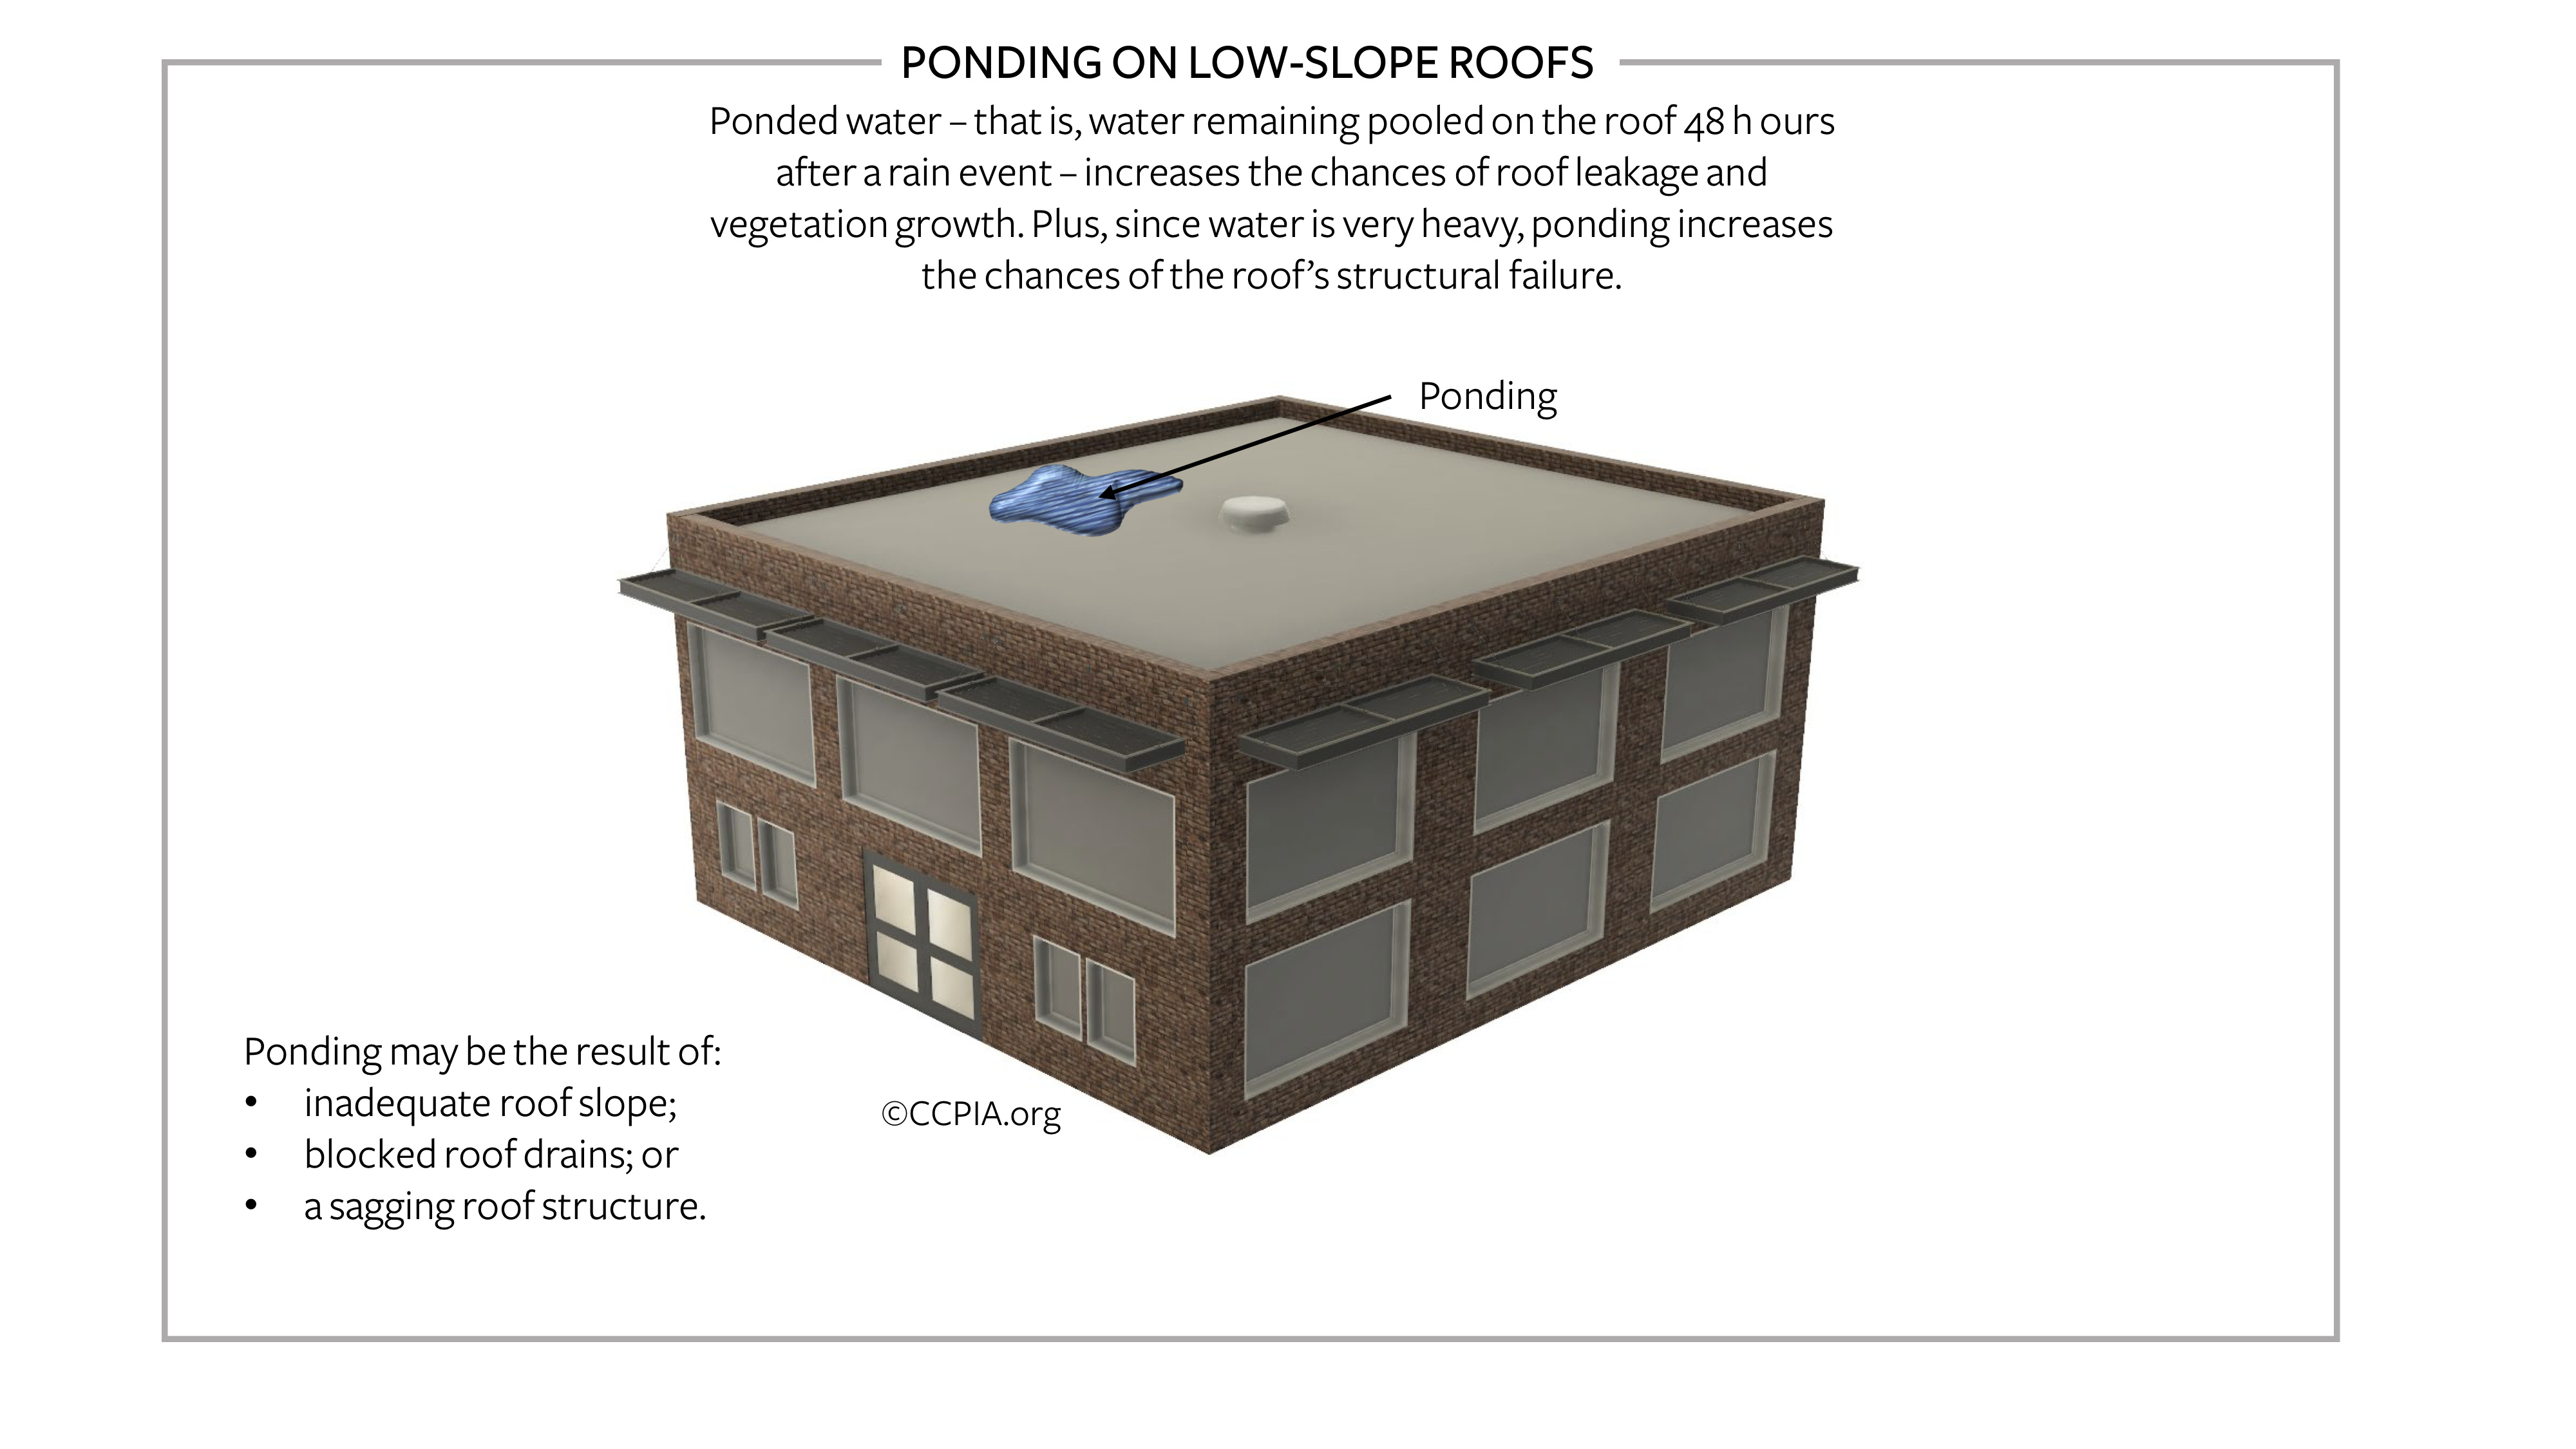 Ponding on a flat or low-slope roof.